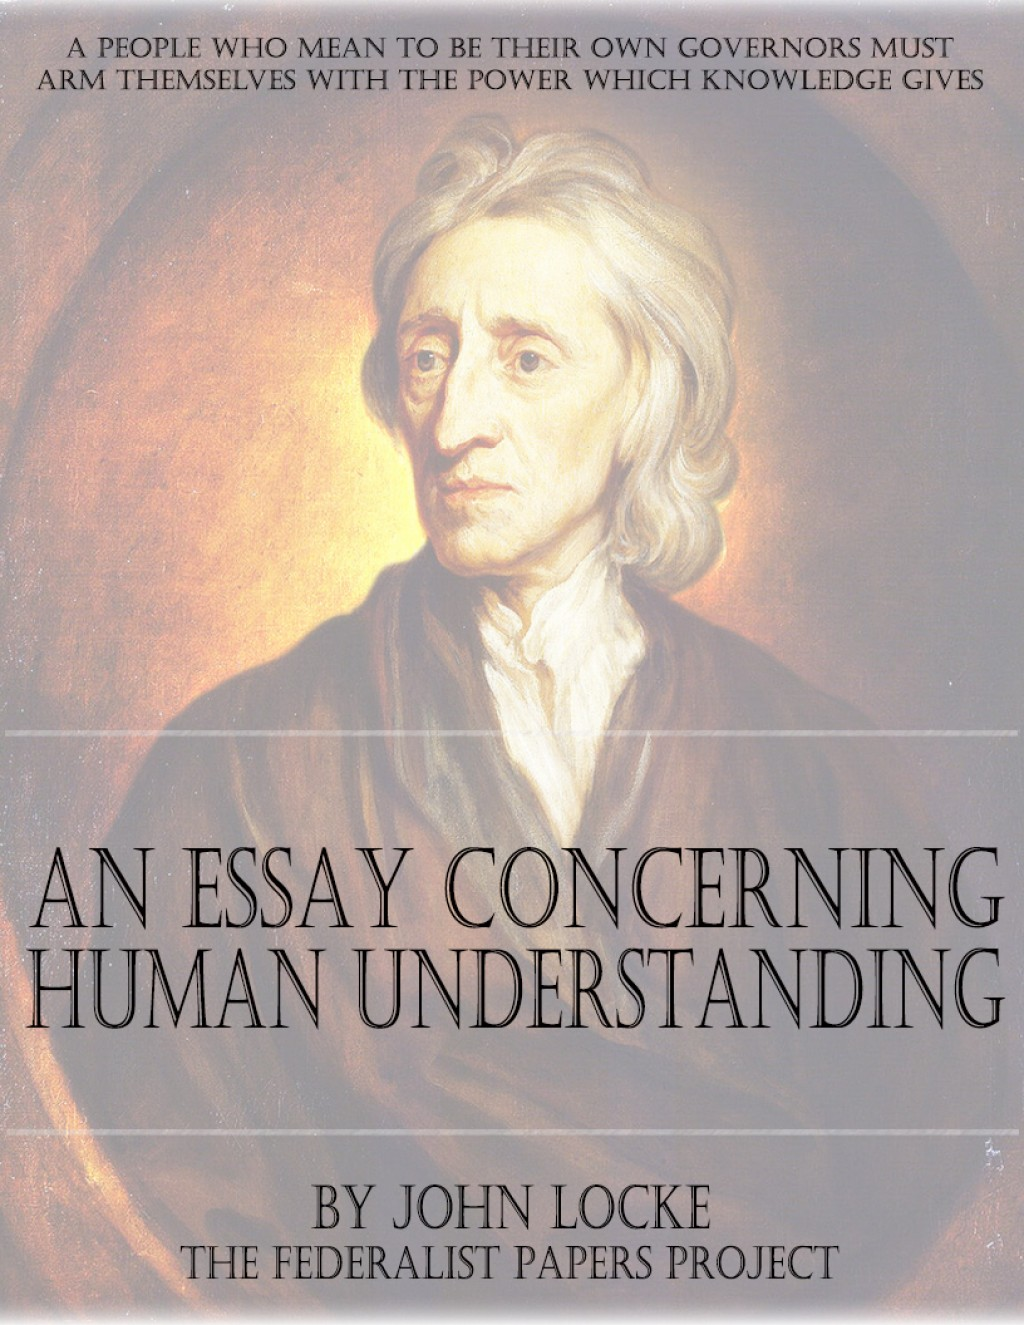 002 Essay Example Locke Concerning Human Understanding John An Cover Best Summary Book 2 Full Text Pdf Gutenberg Large